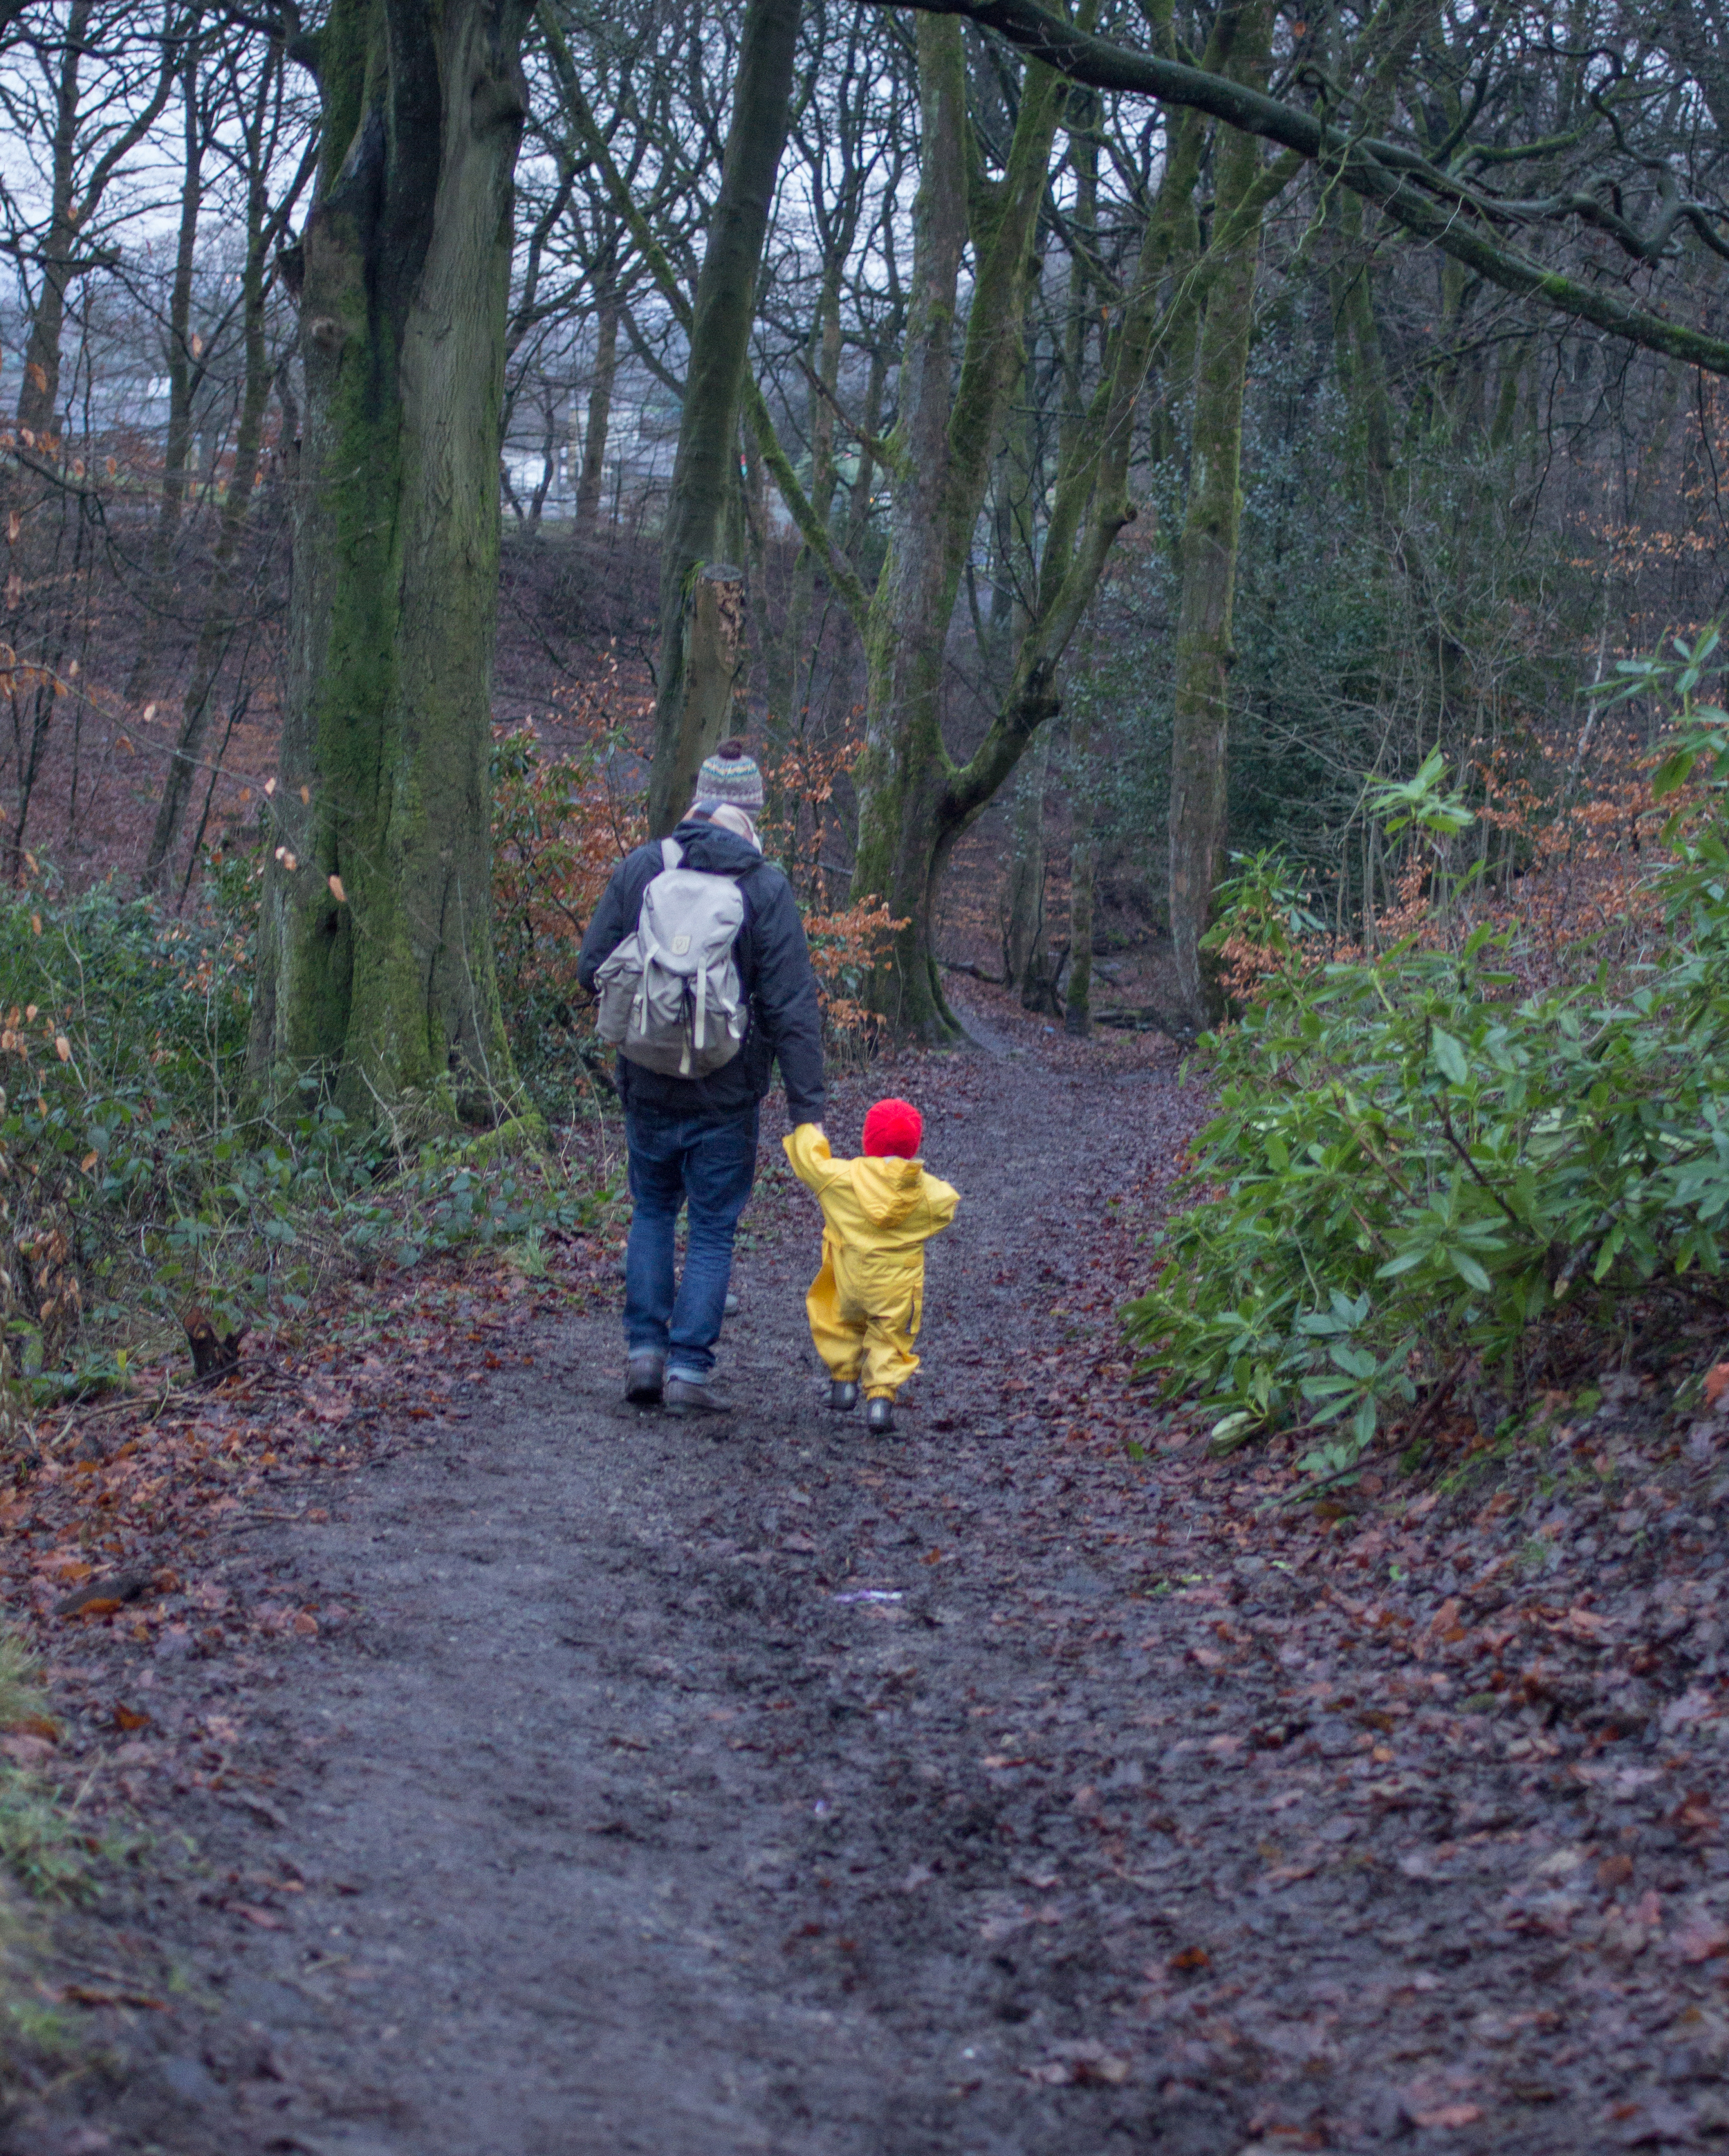 Dave and Frankie in the woods